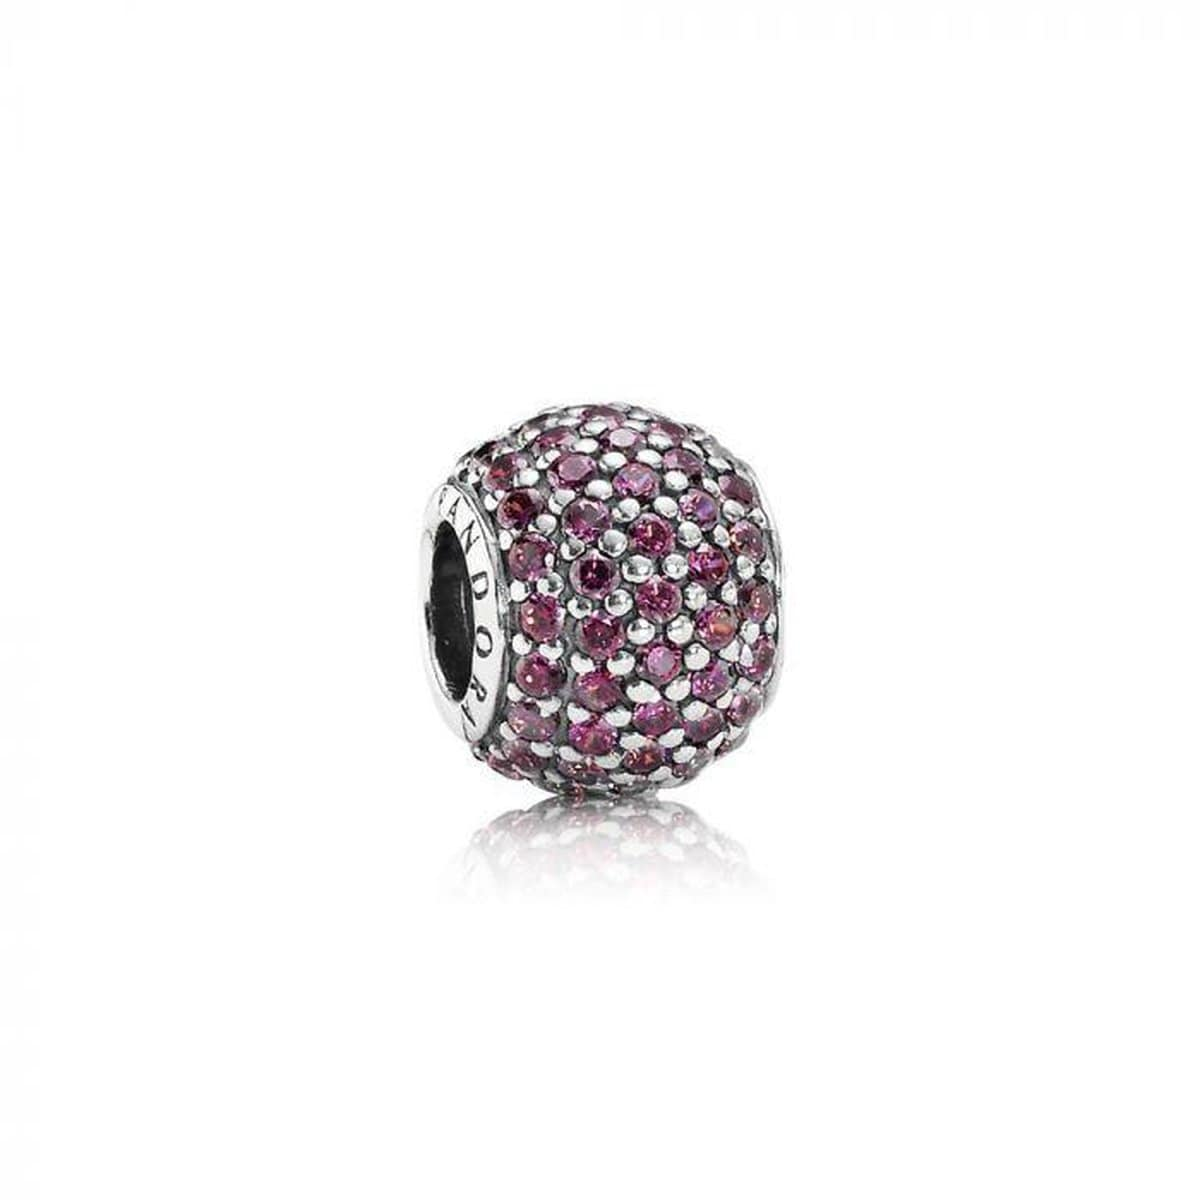 Red Pave Lights Red Cubic Zirconia Charm - 791051CZR-Pandora-Renee Taylor Gallery